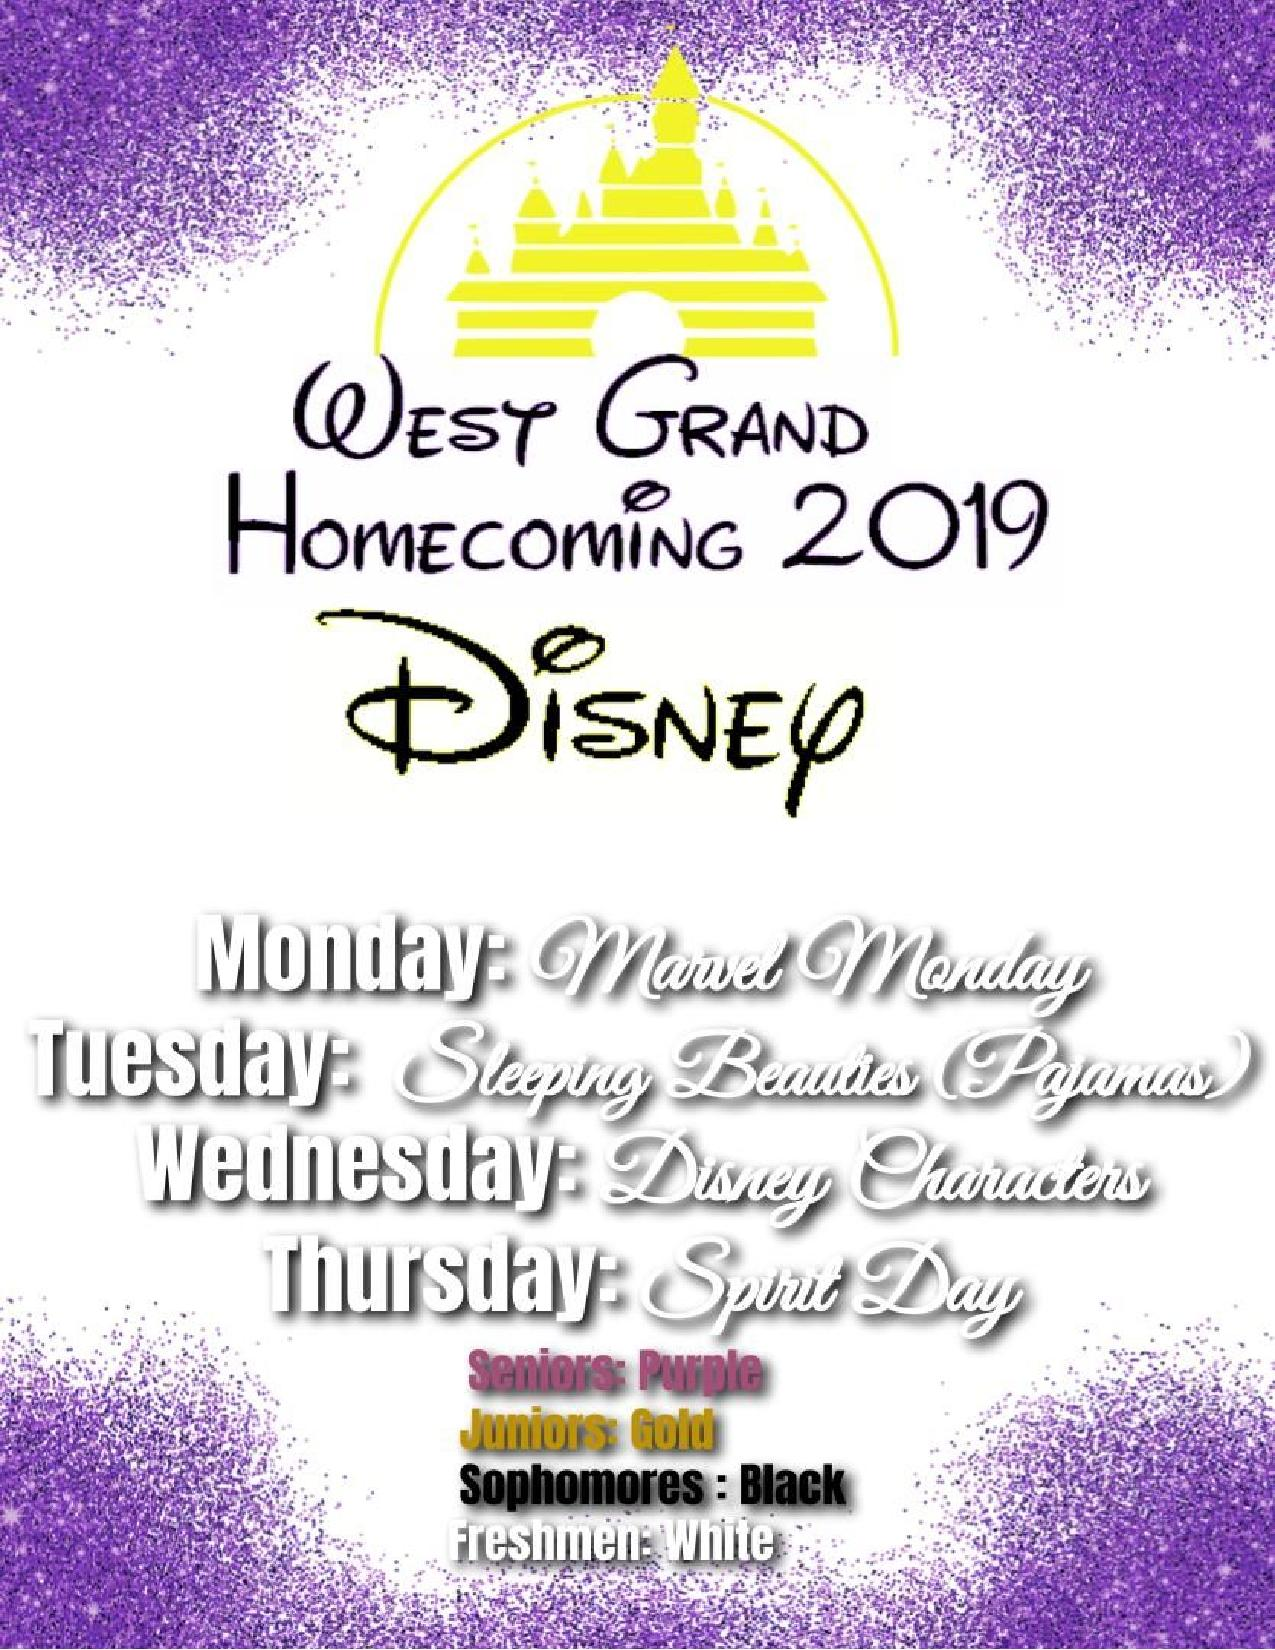 Homecoming Week Dress Up Day Themes